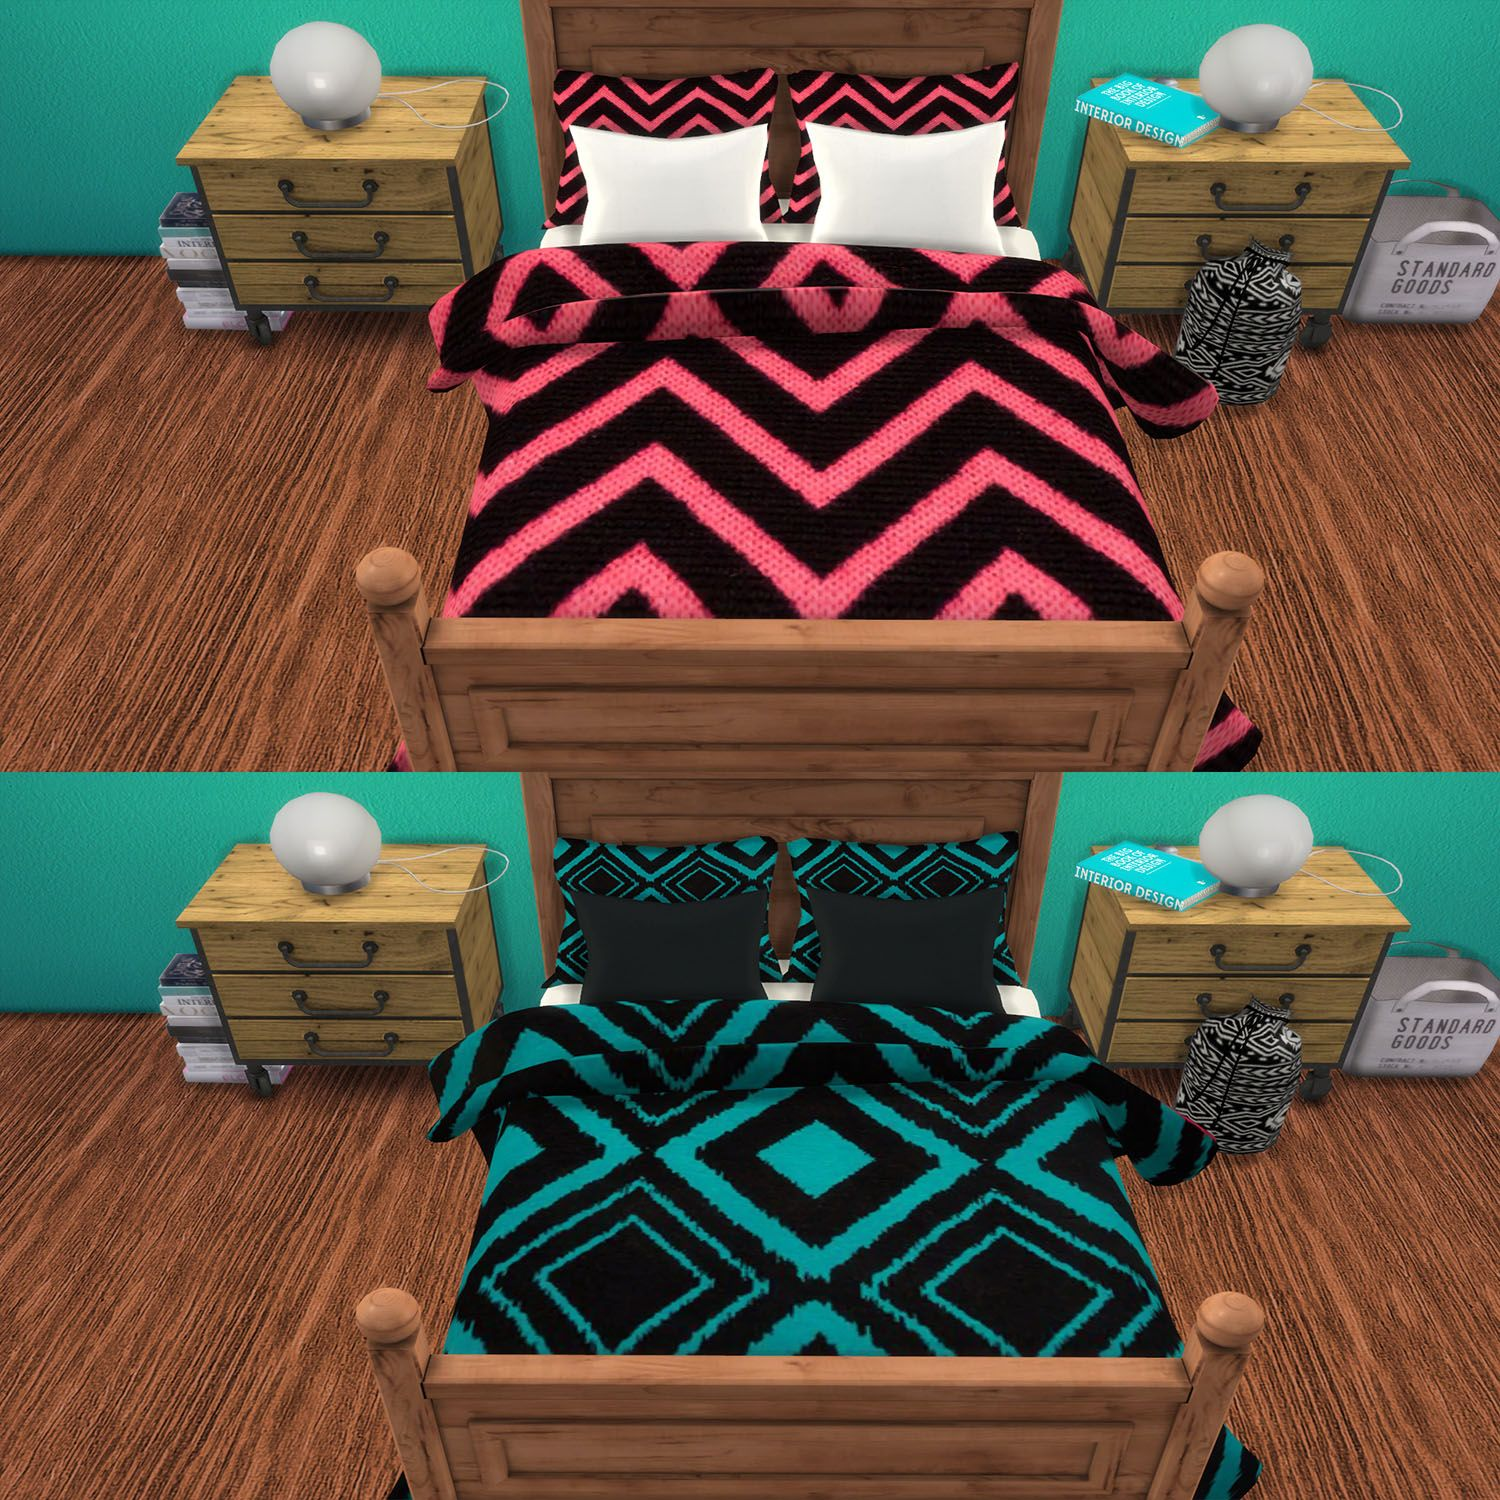 Sims 4 Cc S The Best Blankets Amp Pillows By Cc For Sims